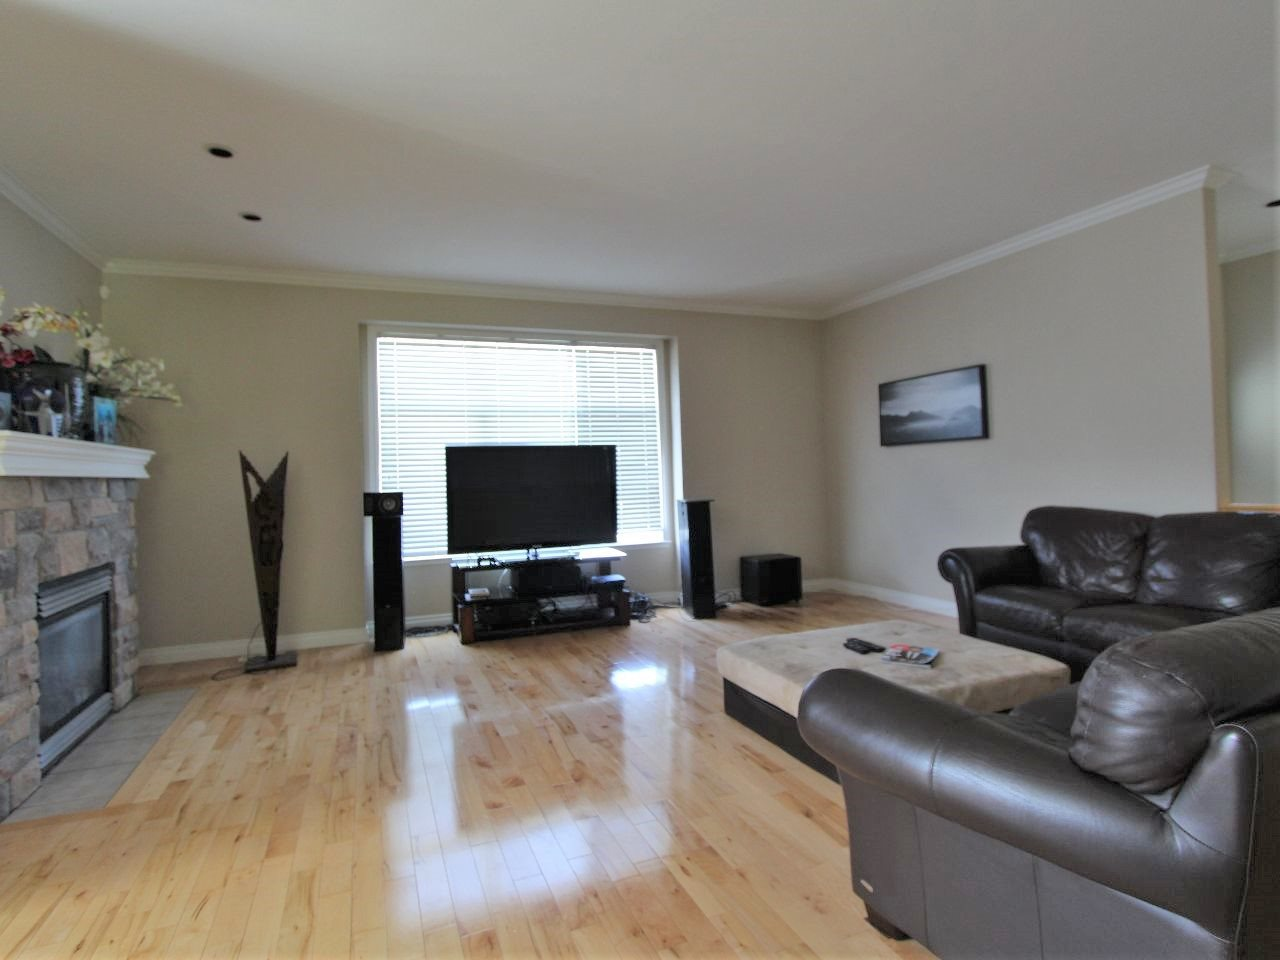 Photo 6: 30456 HERITAGE Drive in Abbotsford: Abbotsford West House for sale : MLS® # R2066678